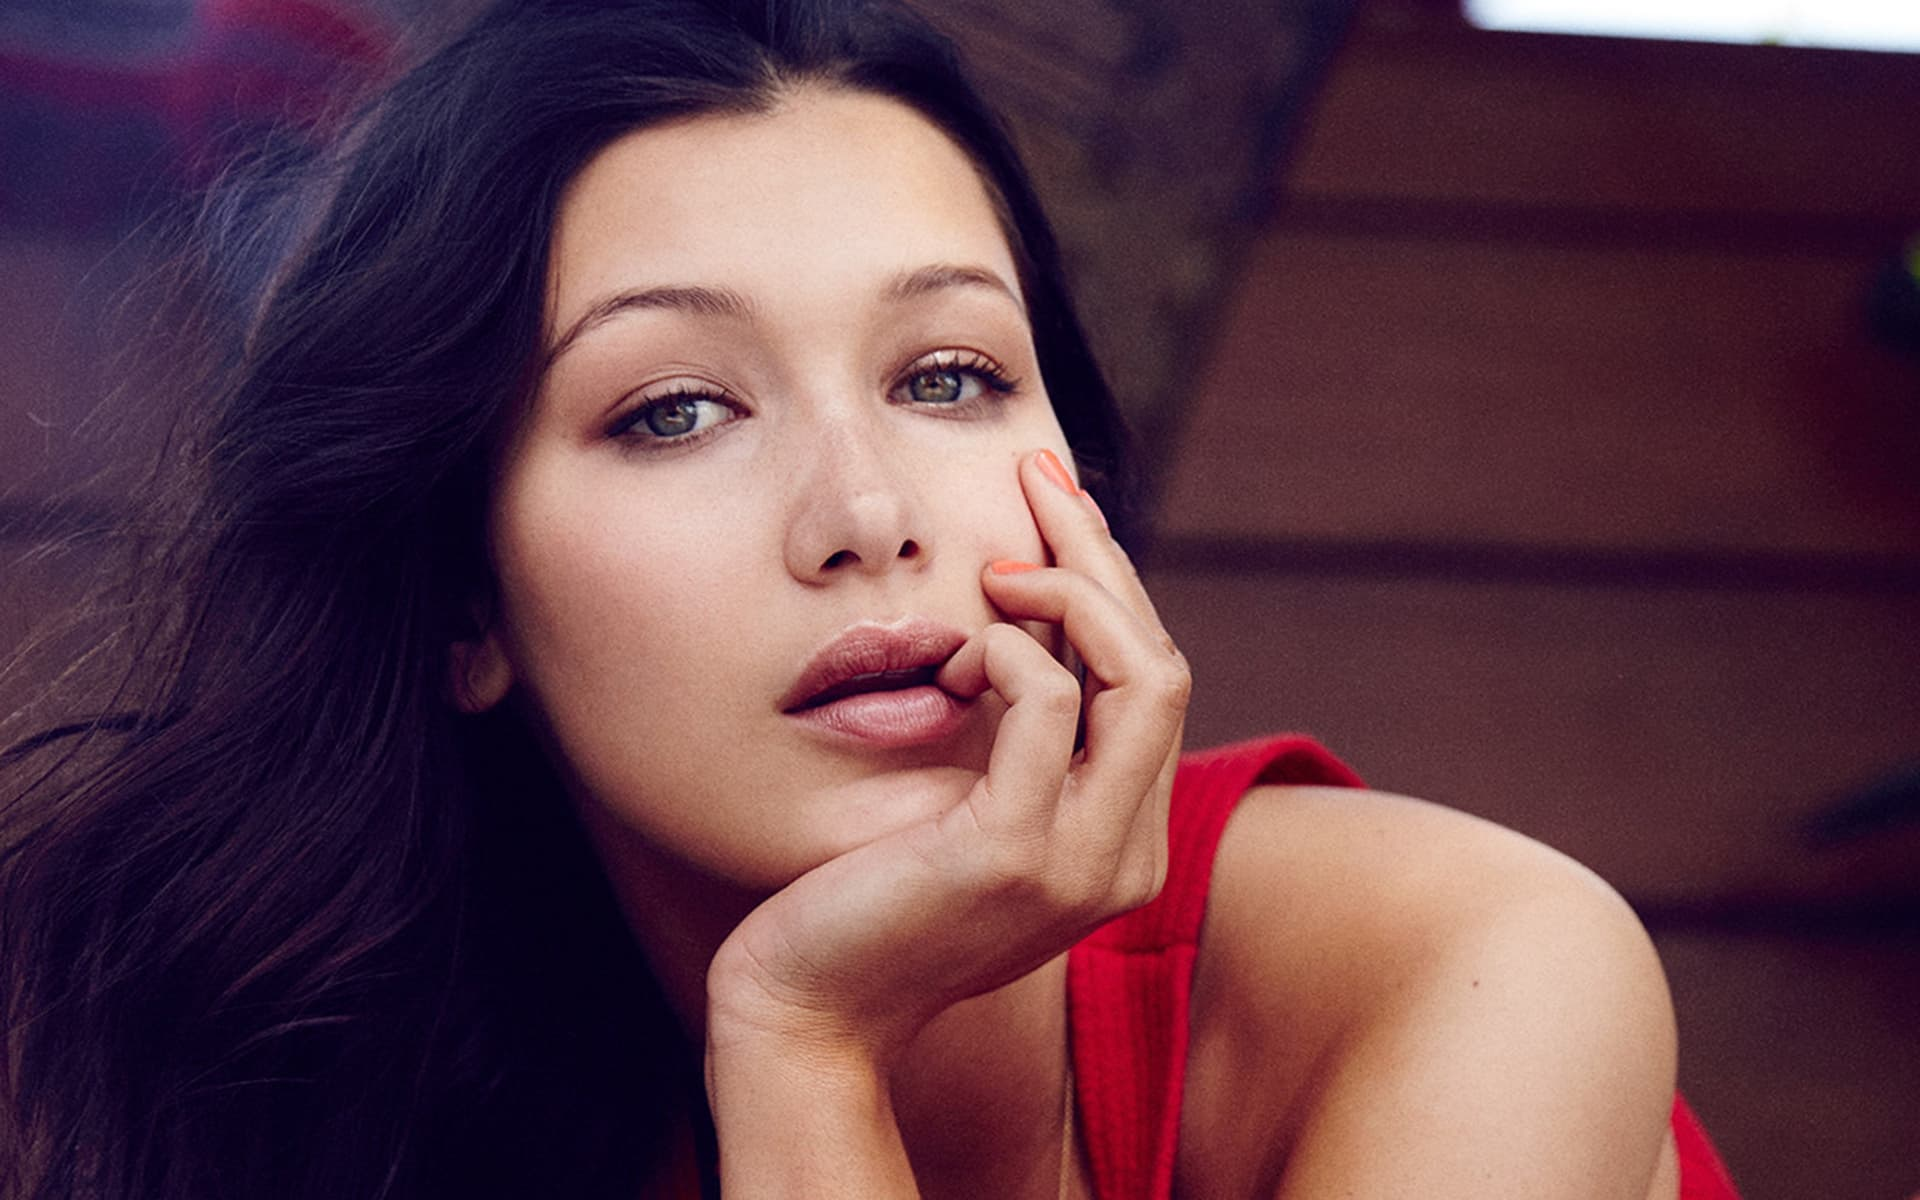 17 Bella Hadid Wallpapers High Quality Resolution Download